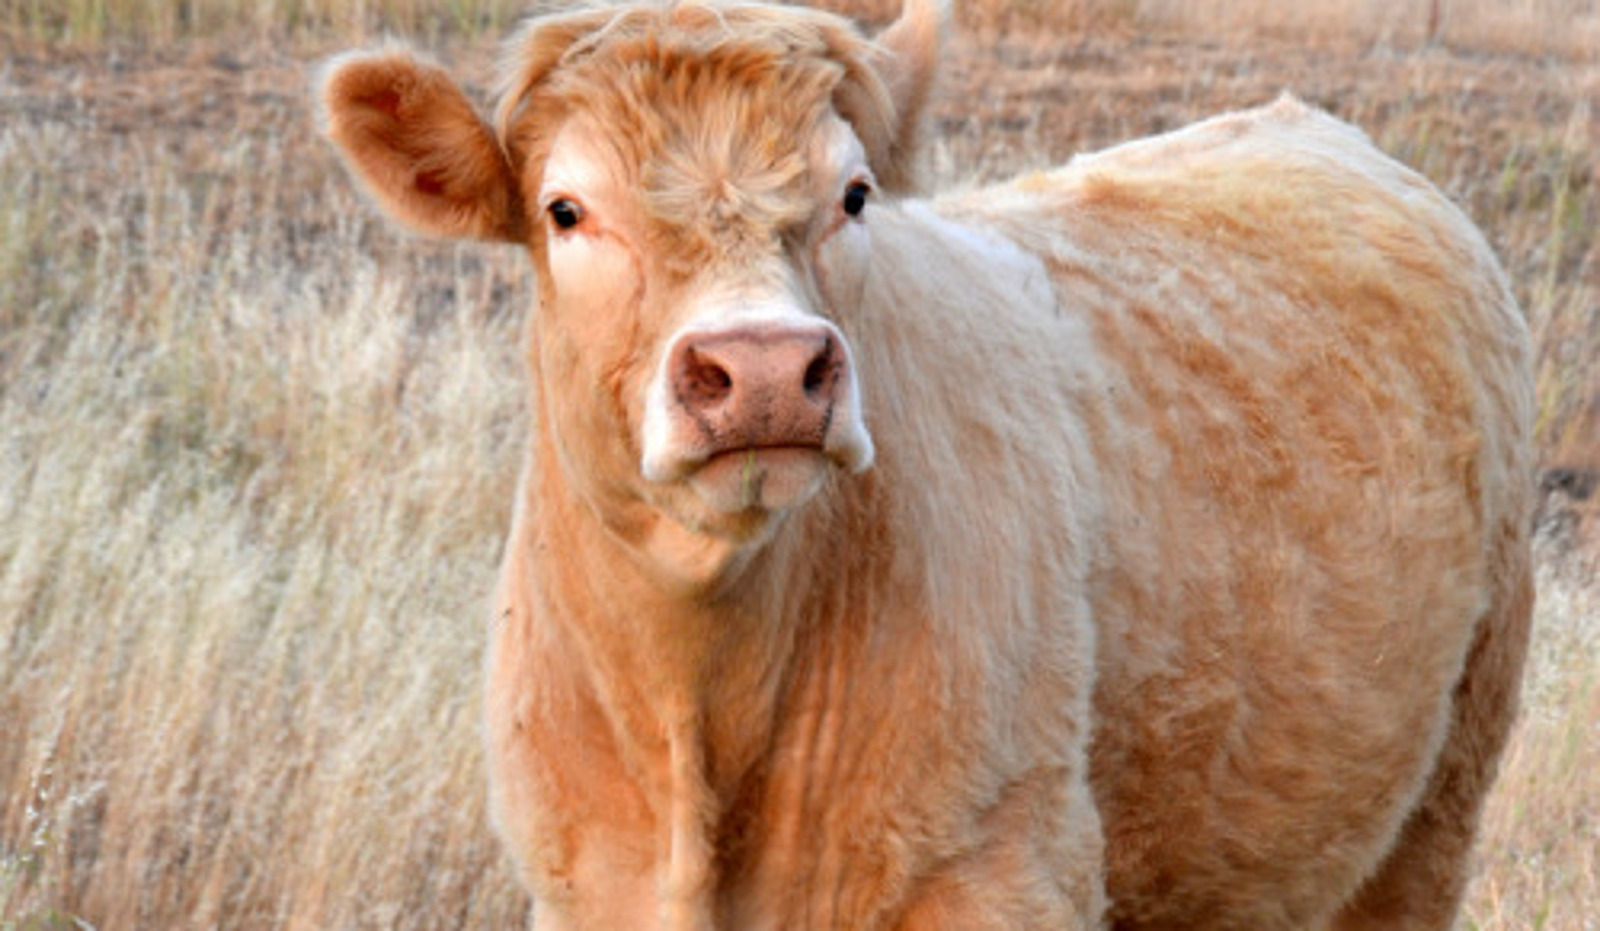 Meet Stefan the Cow Who Was Saved From a 4-H Program Thanks to a Kind Teenage Girl